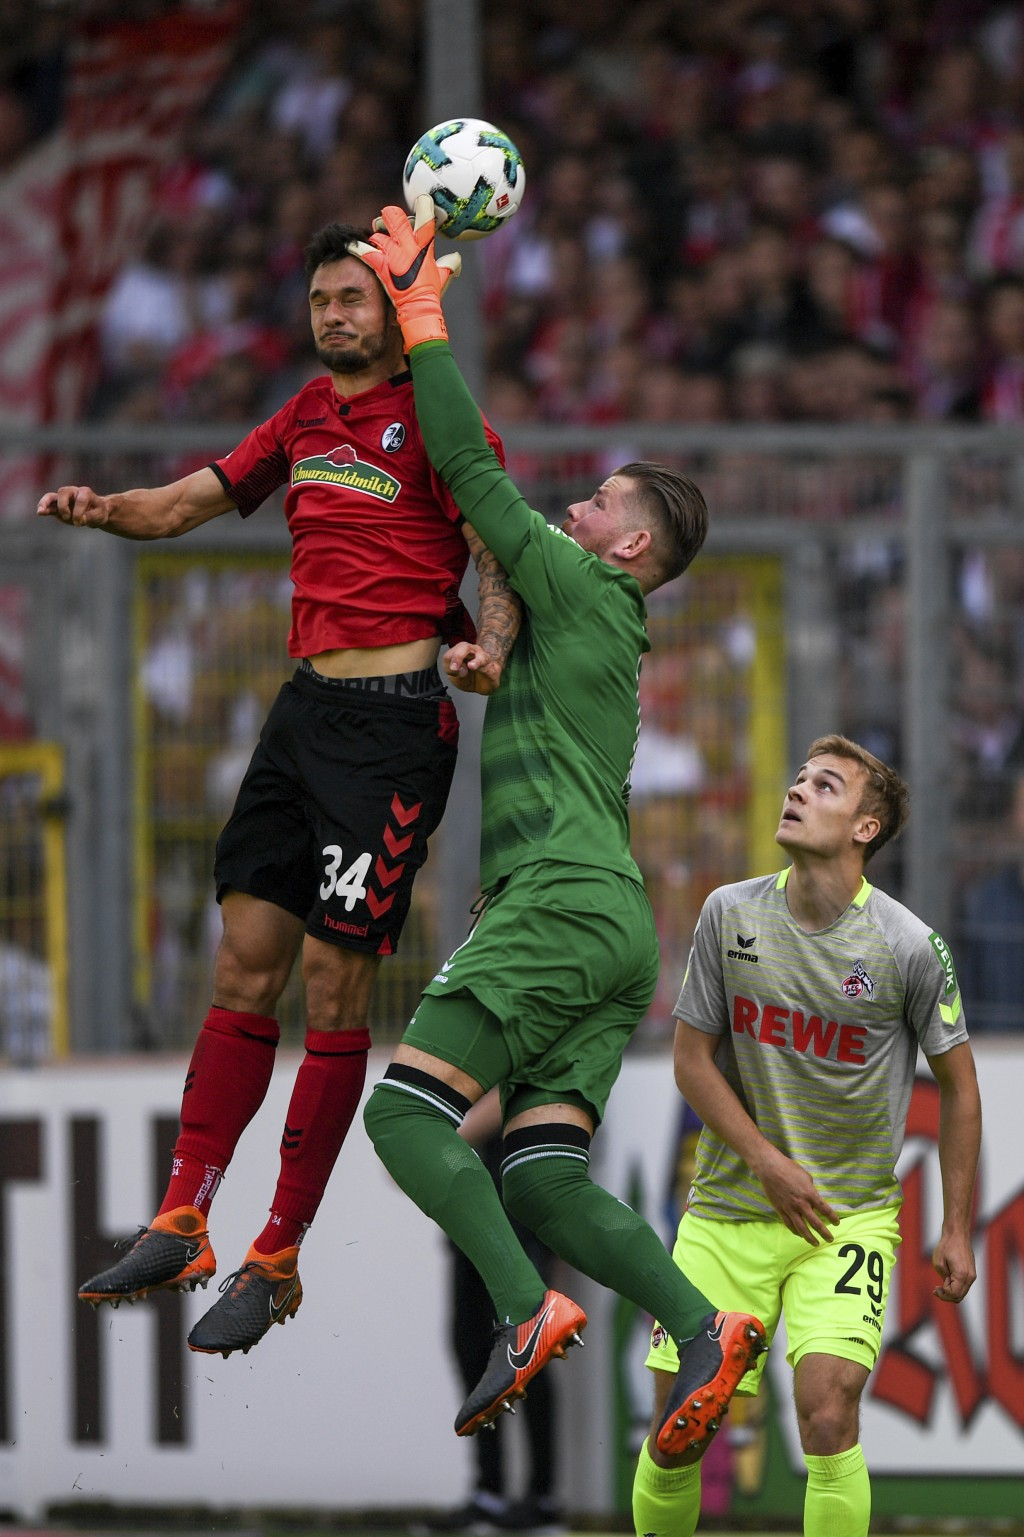 Cologne's goalie Timo Hornm center, and Freiburg's Tim Kleindienst, left, challenge for the ball while Cologne's Tim Handwerker looks on during the Ge...